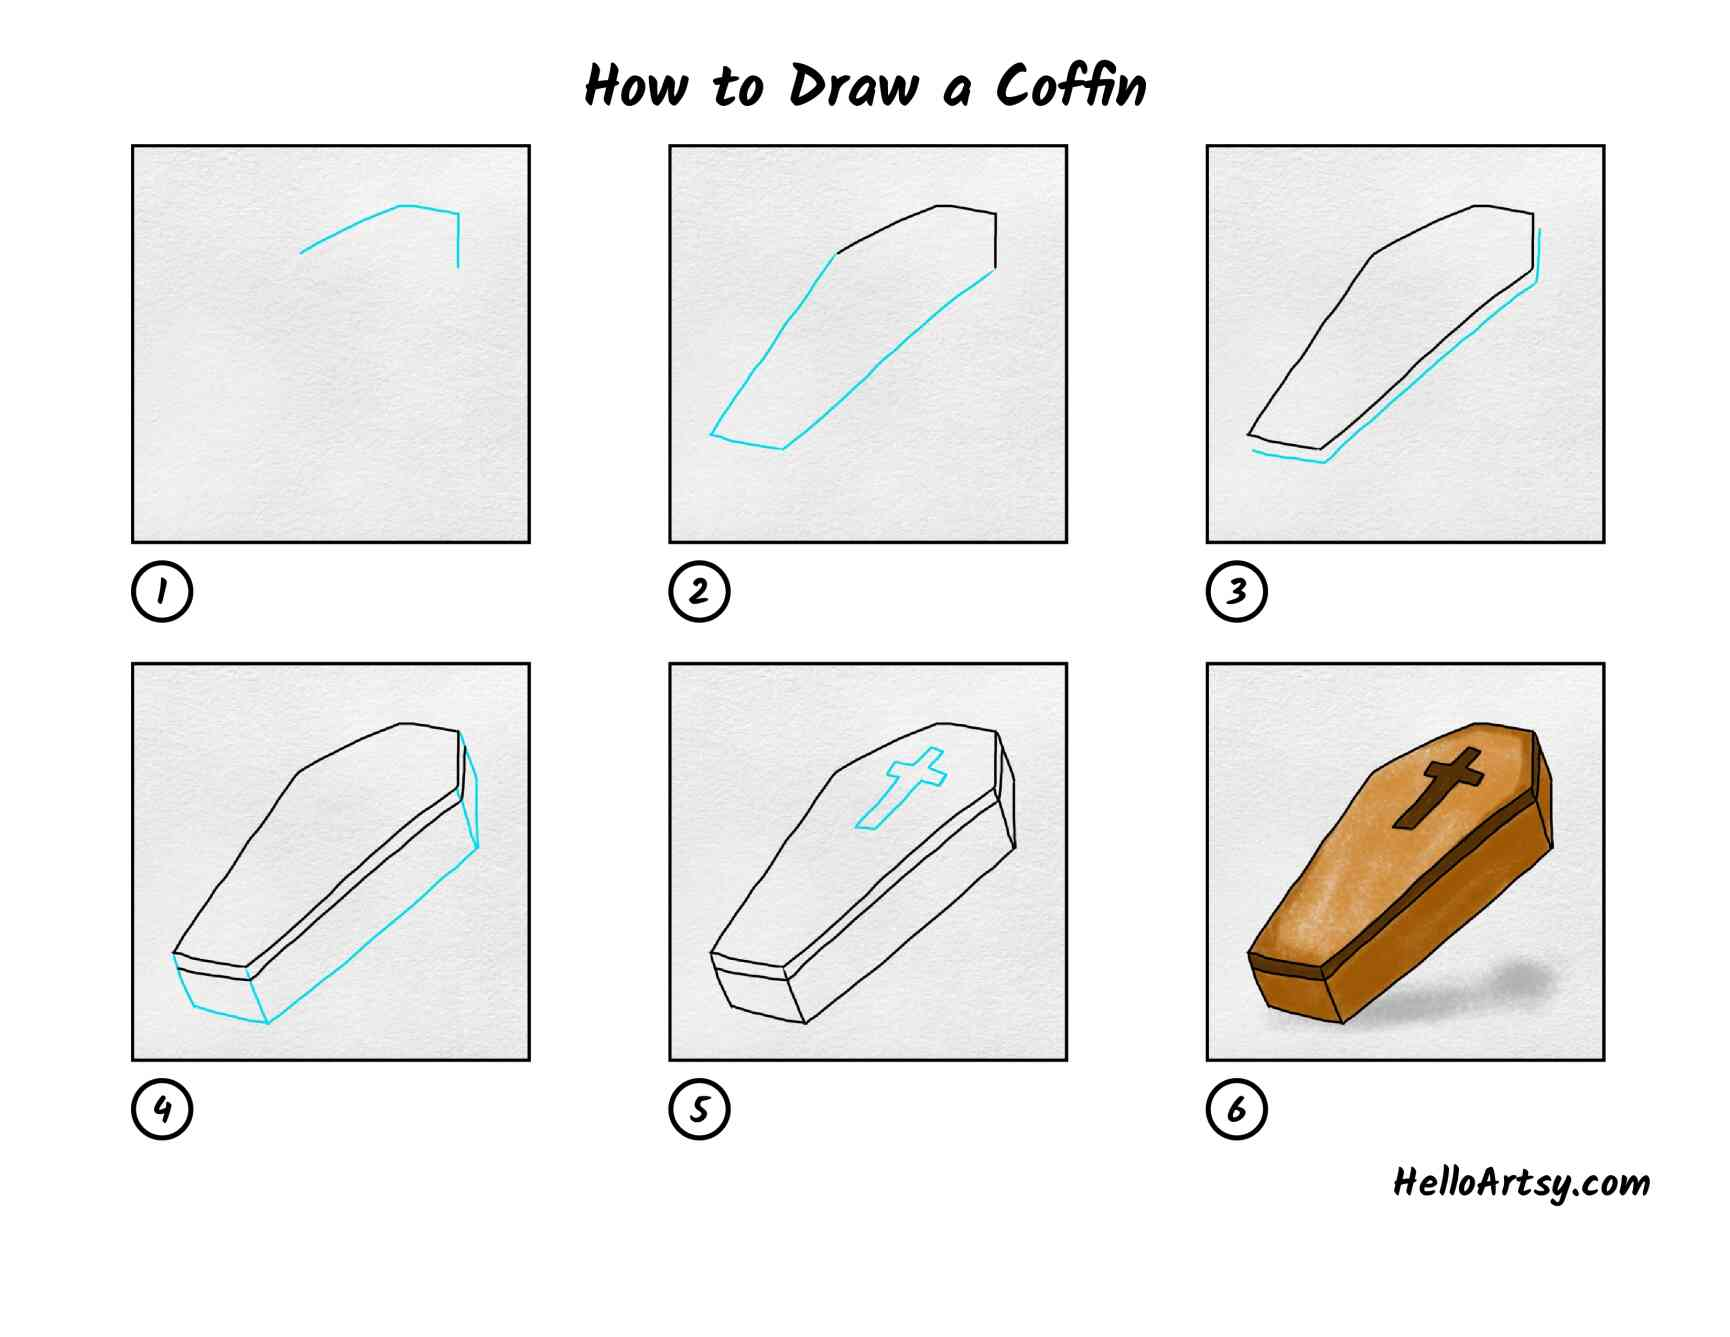 How To Draw A Coffin: All Steps